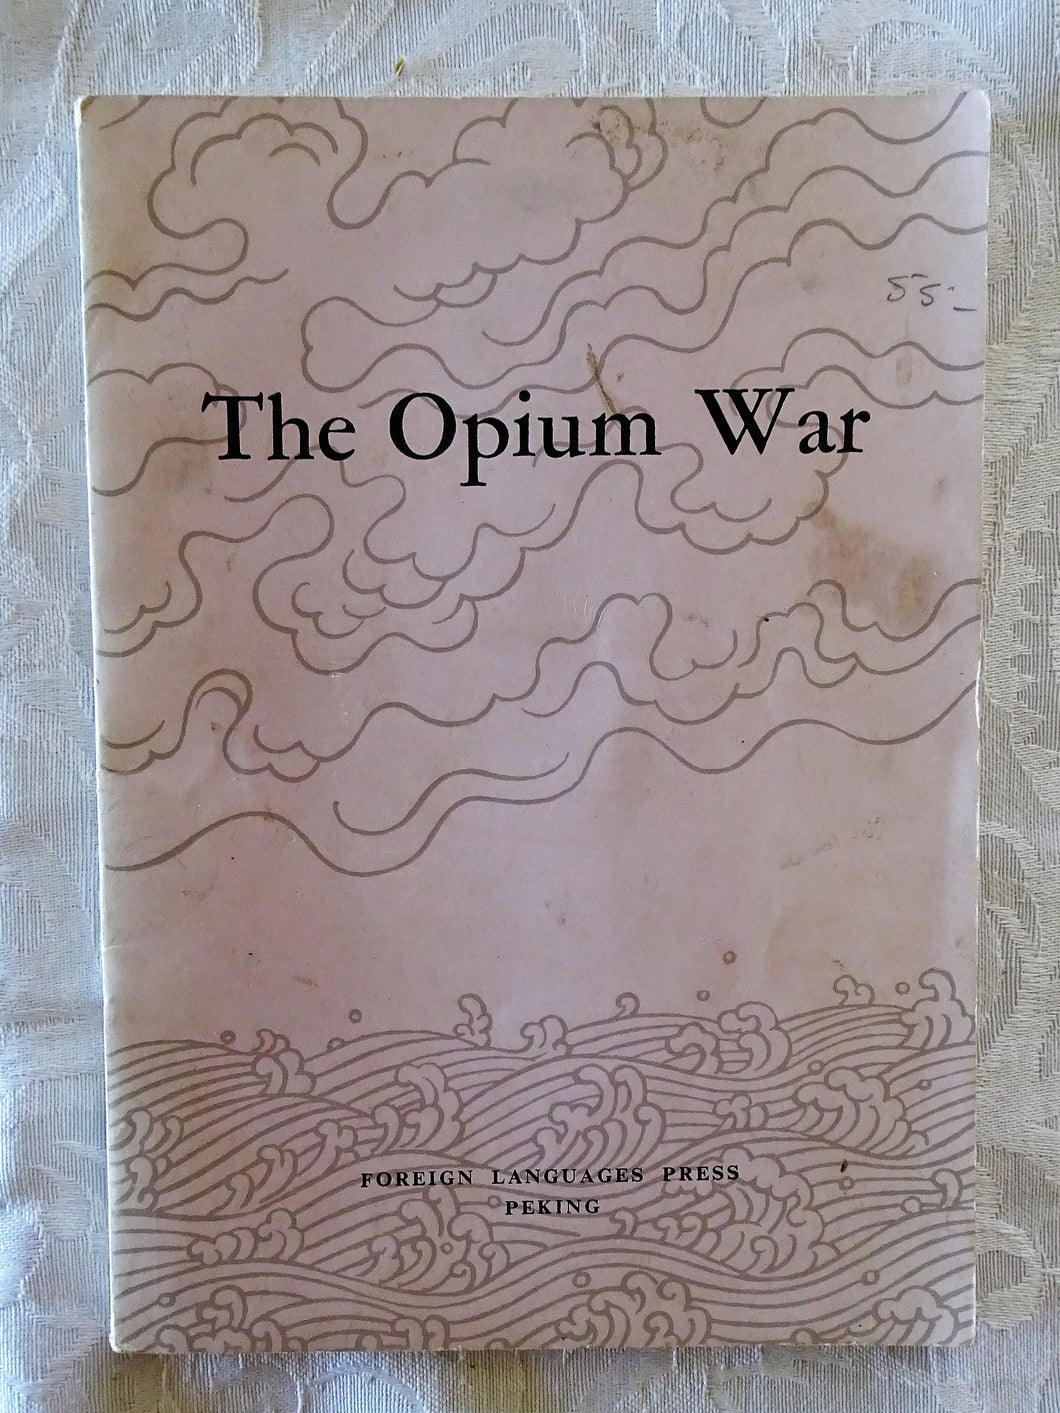 The Opium War by the Compilation Group for the